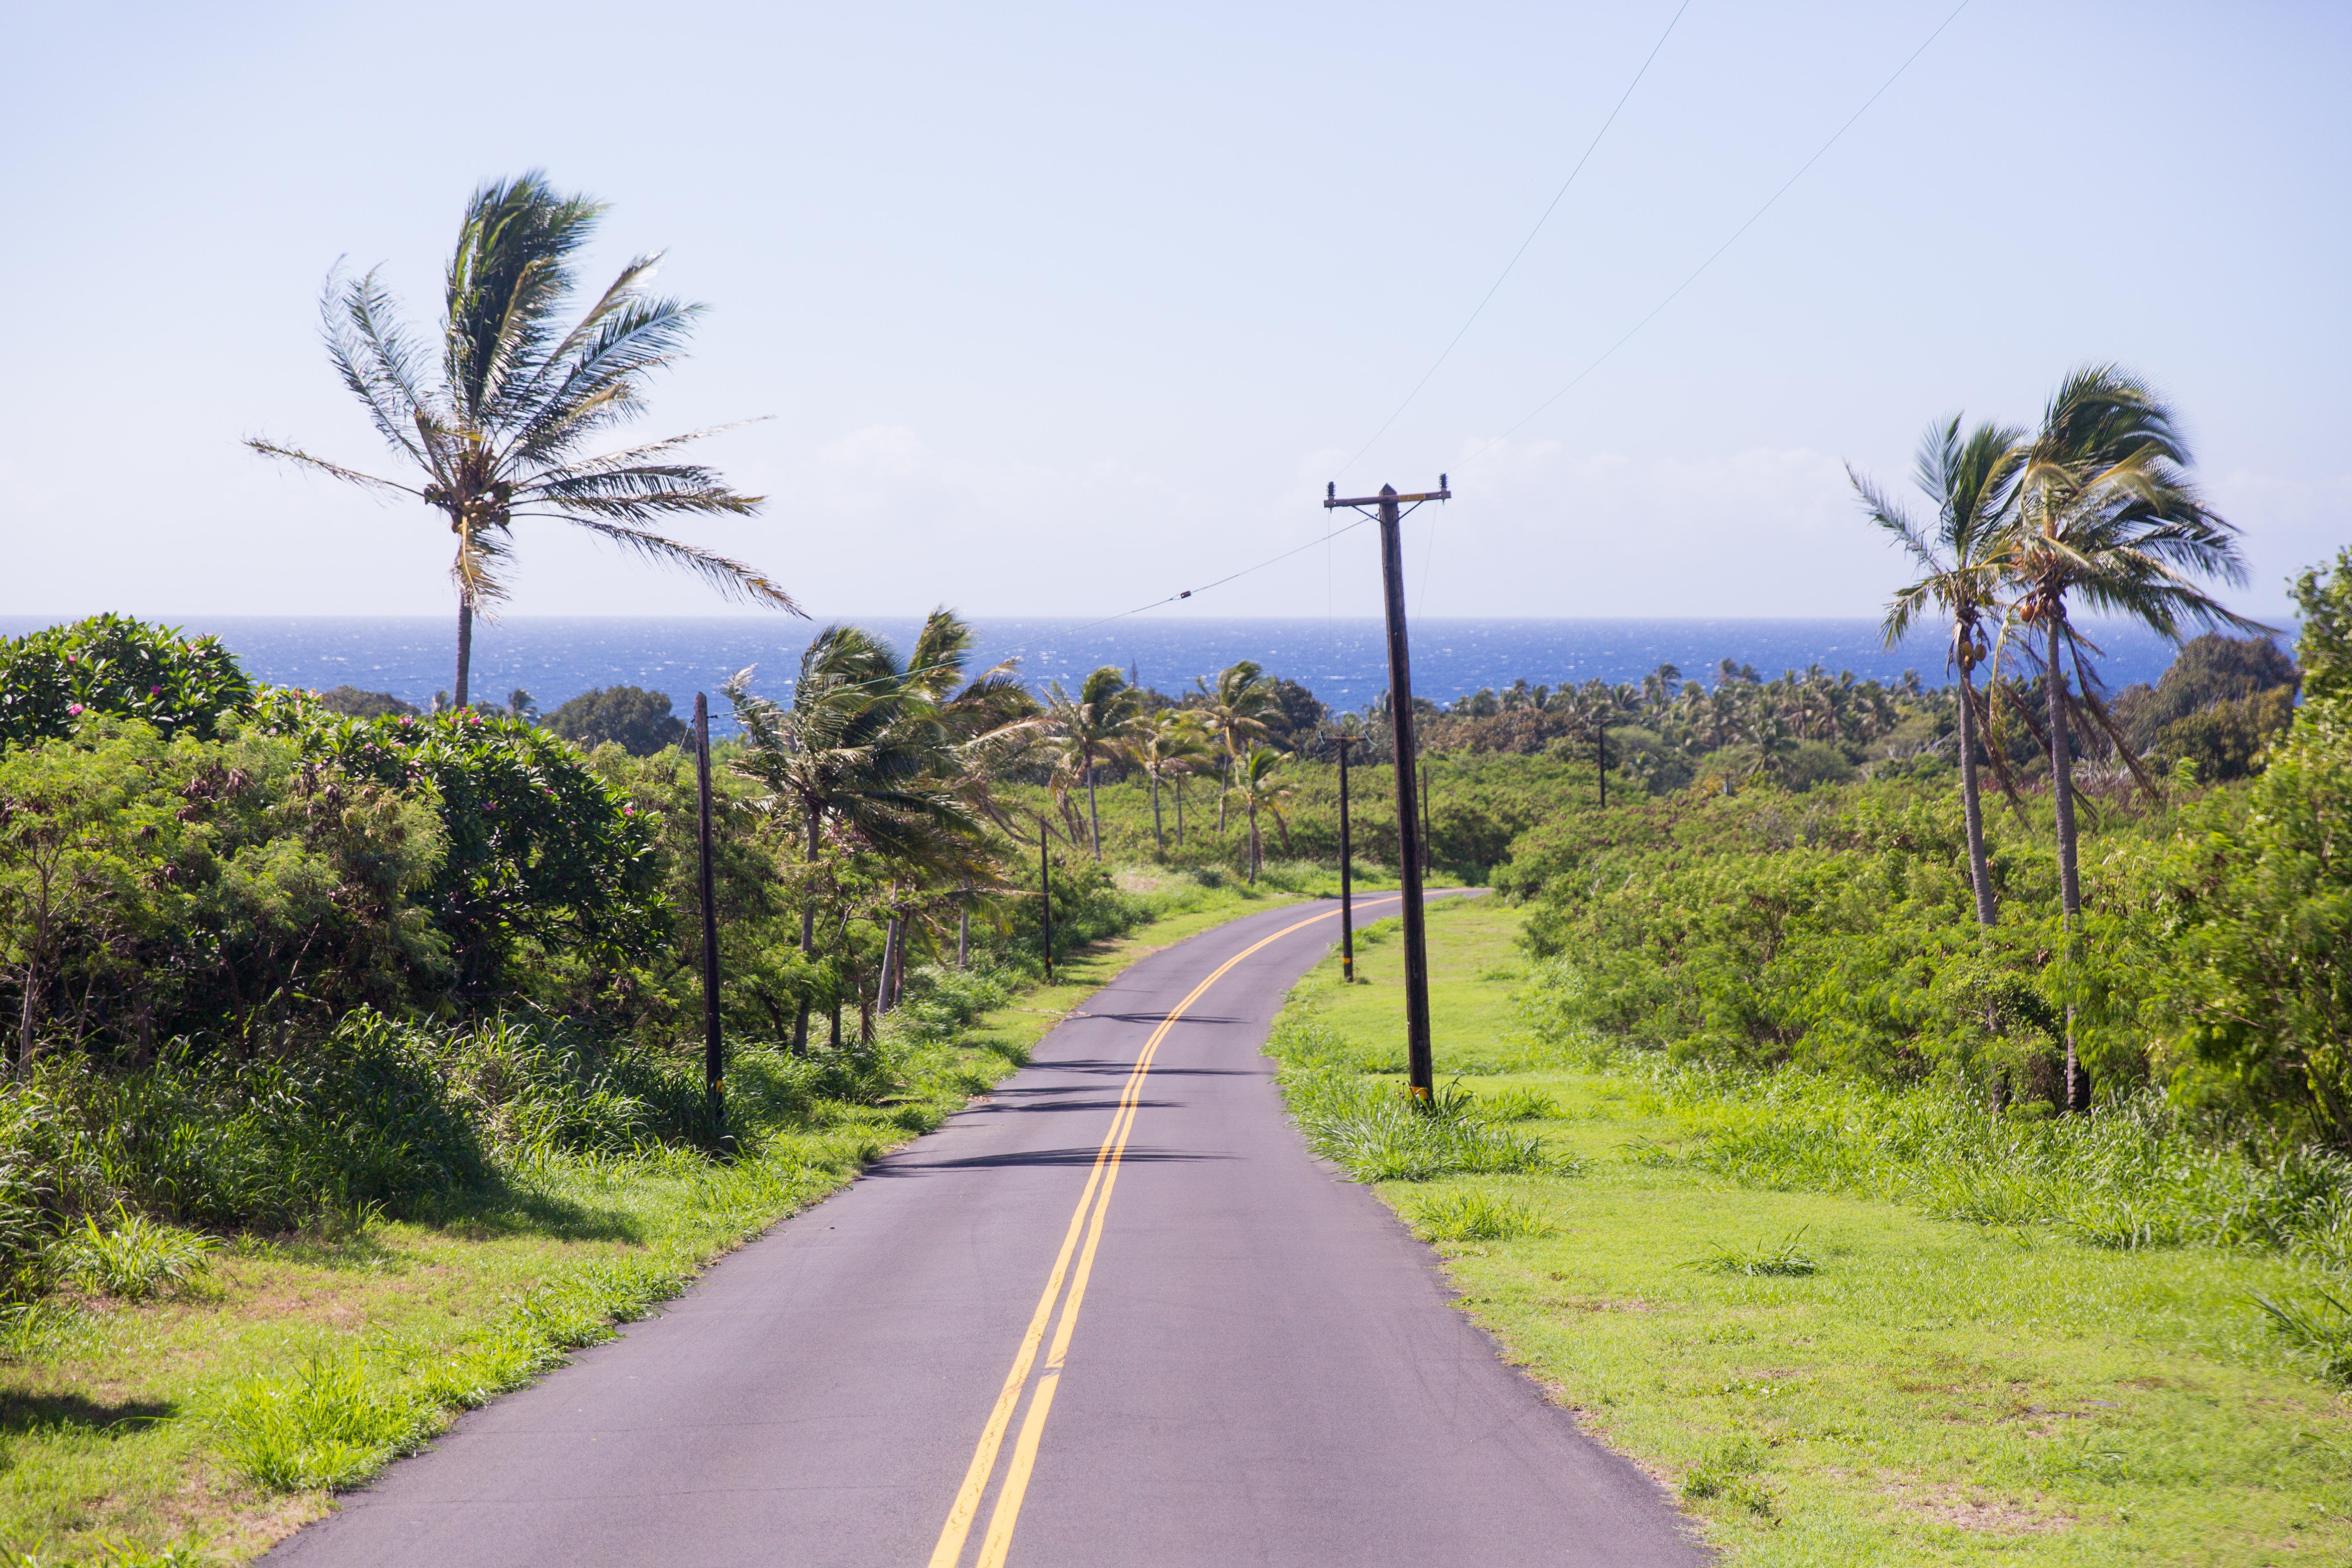 How to Spend 1 Day on the Big Island